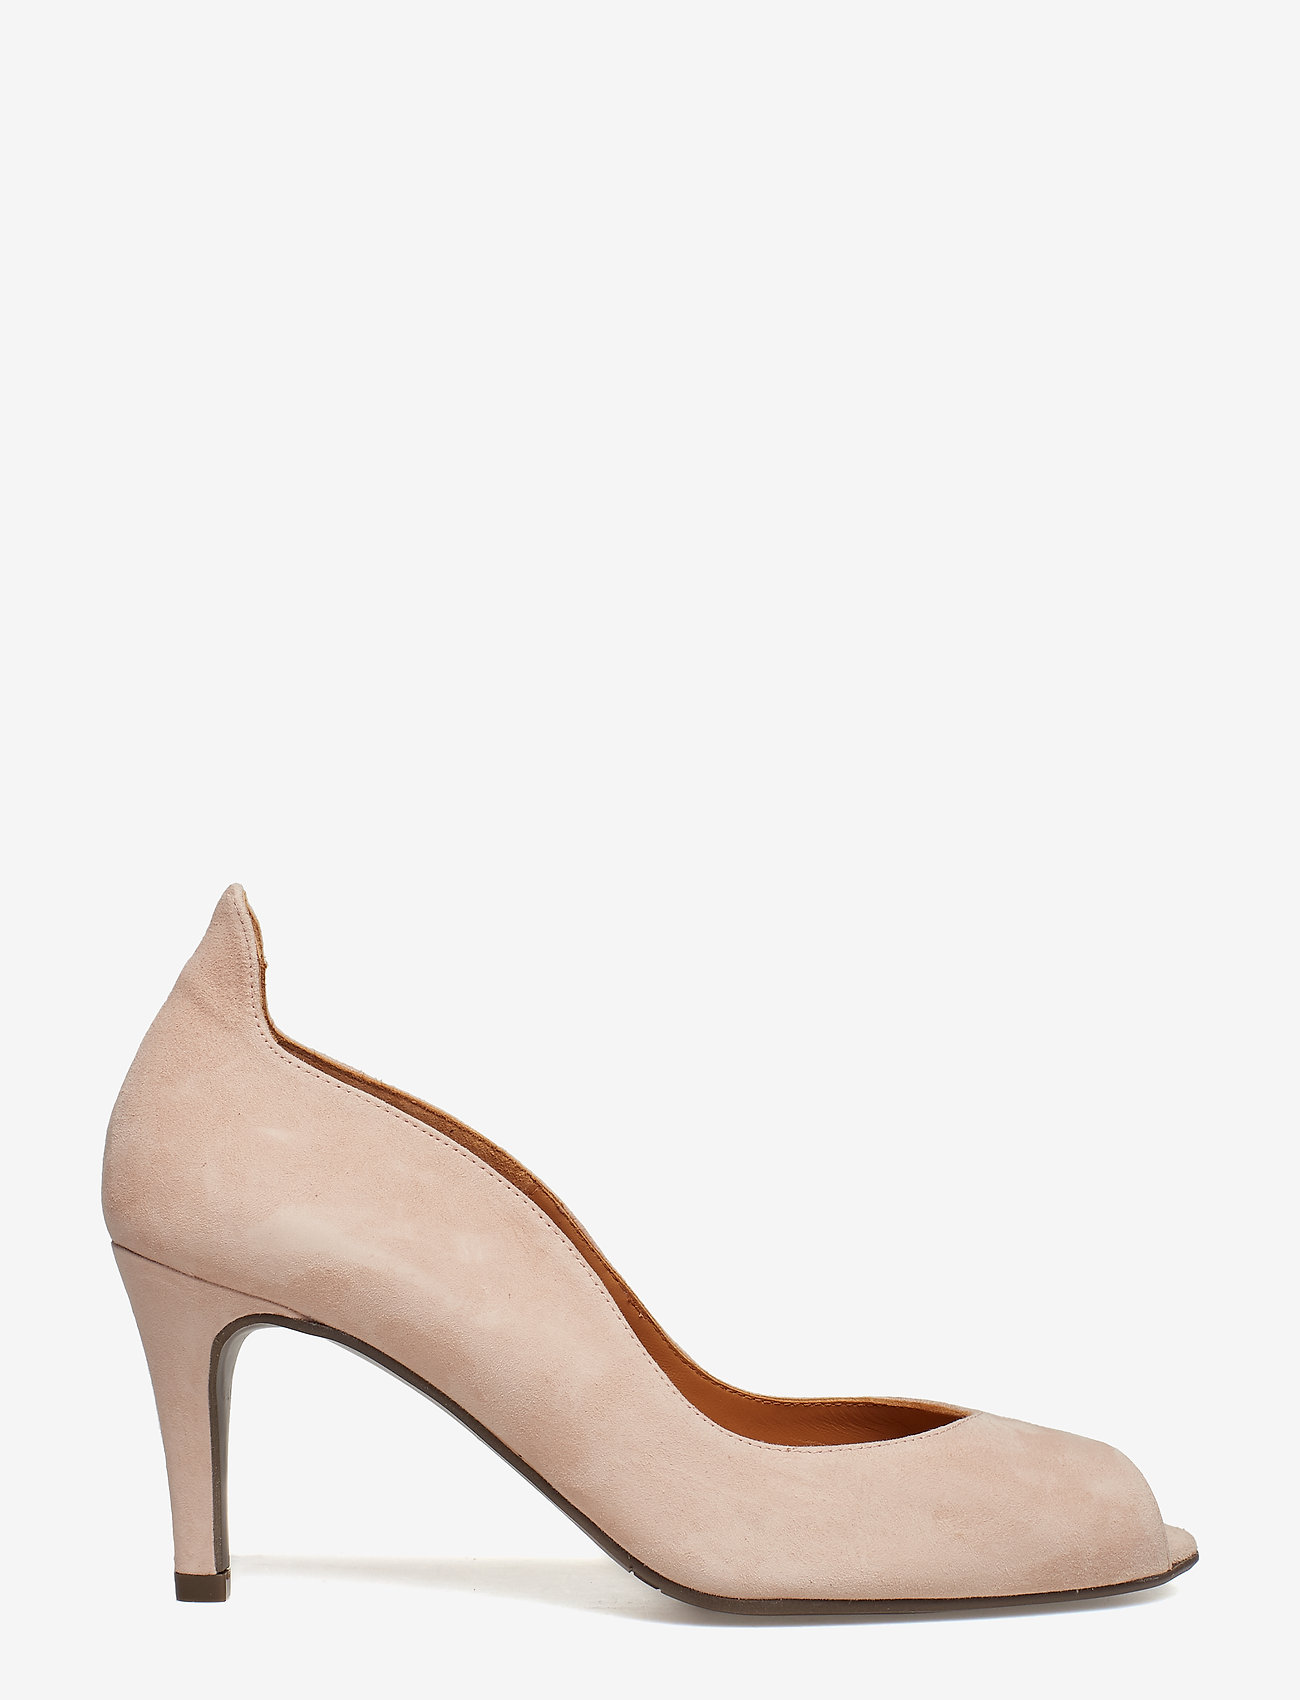 Pumps 8080 (Light Rose Suede 589) (109.85 €) - Billi Bi stg6E